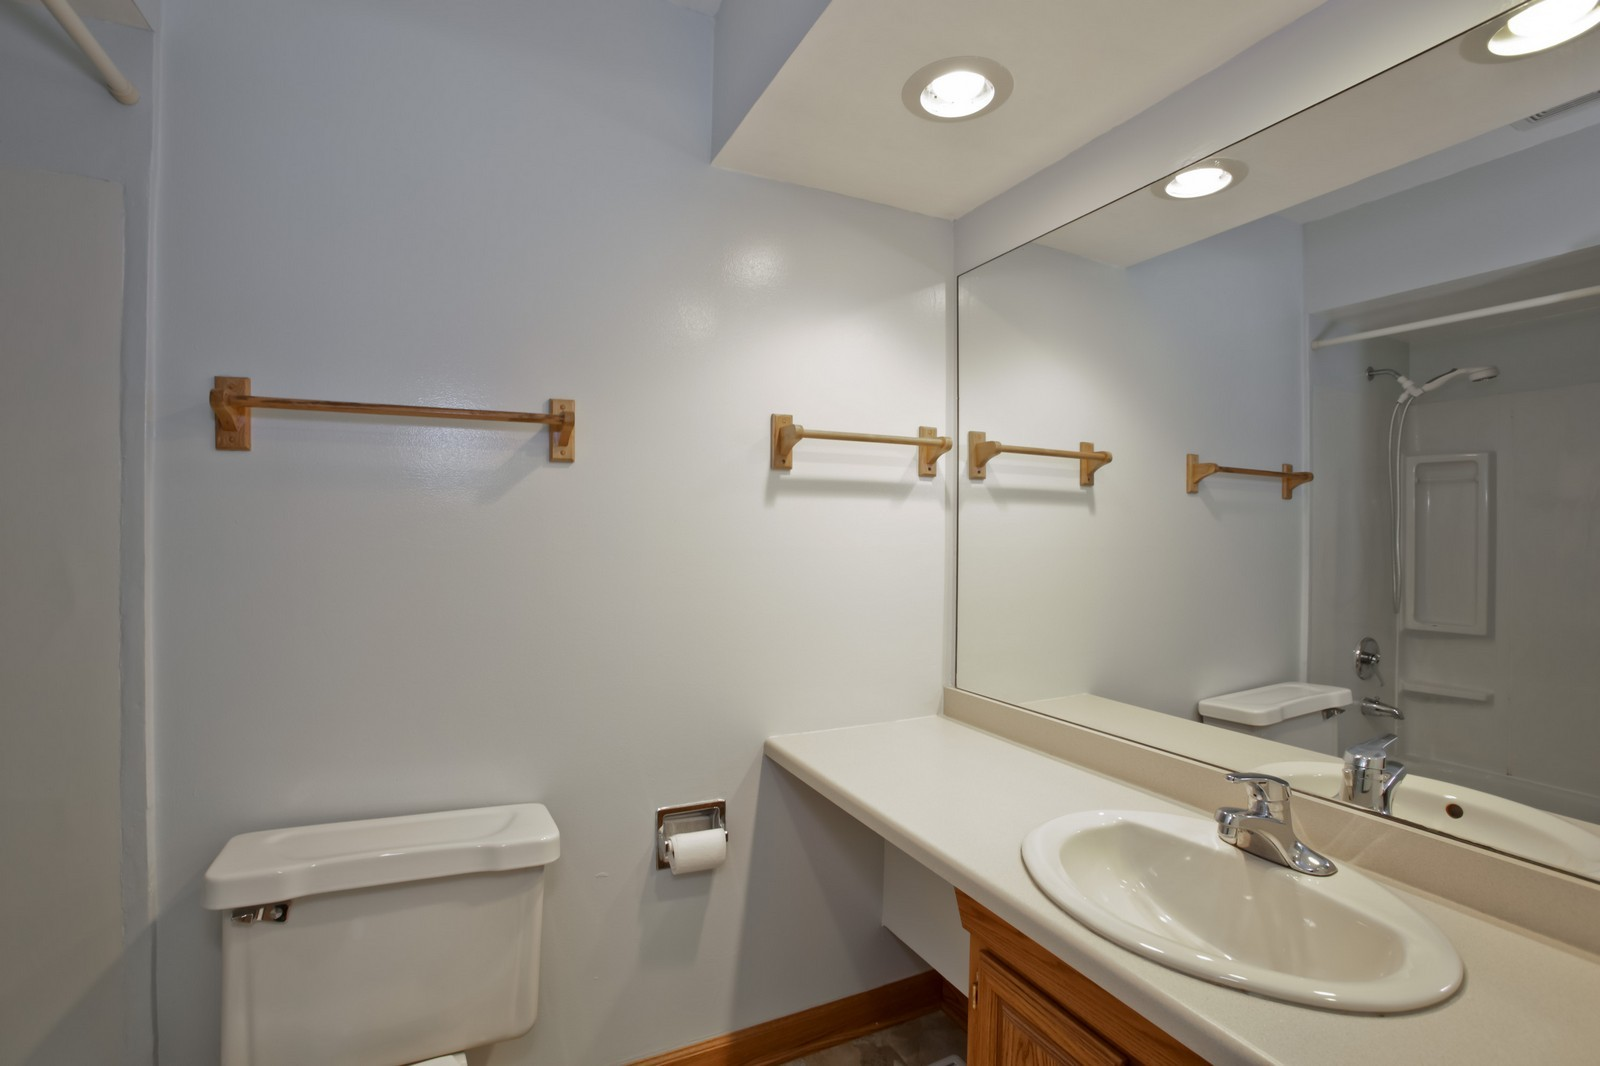 Real Estate Photography - 2811 Hobson Rd, Unit 3, Woodridge, IL, 60517 - Master Bathroom